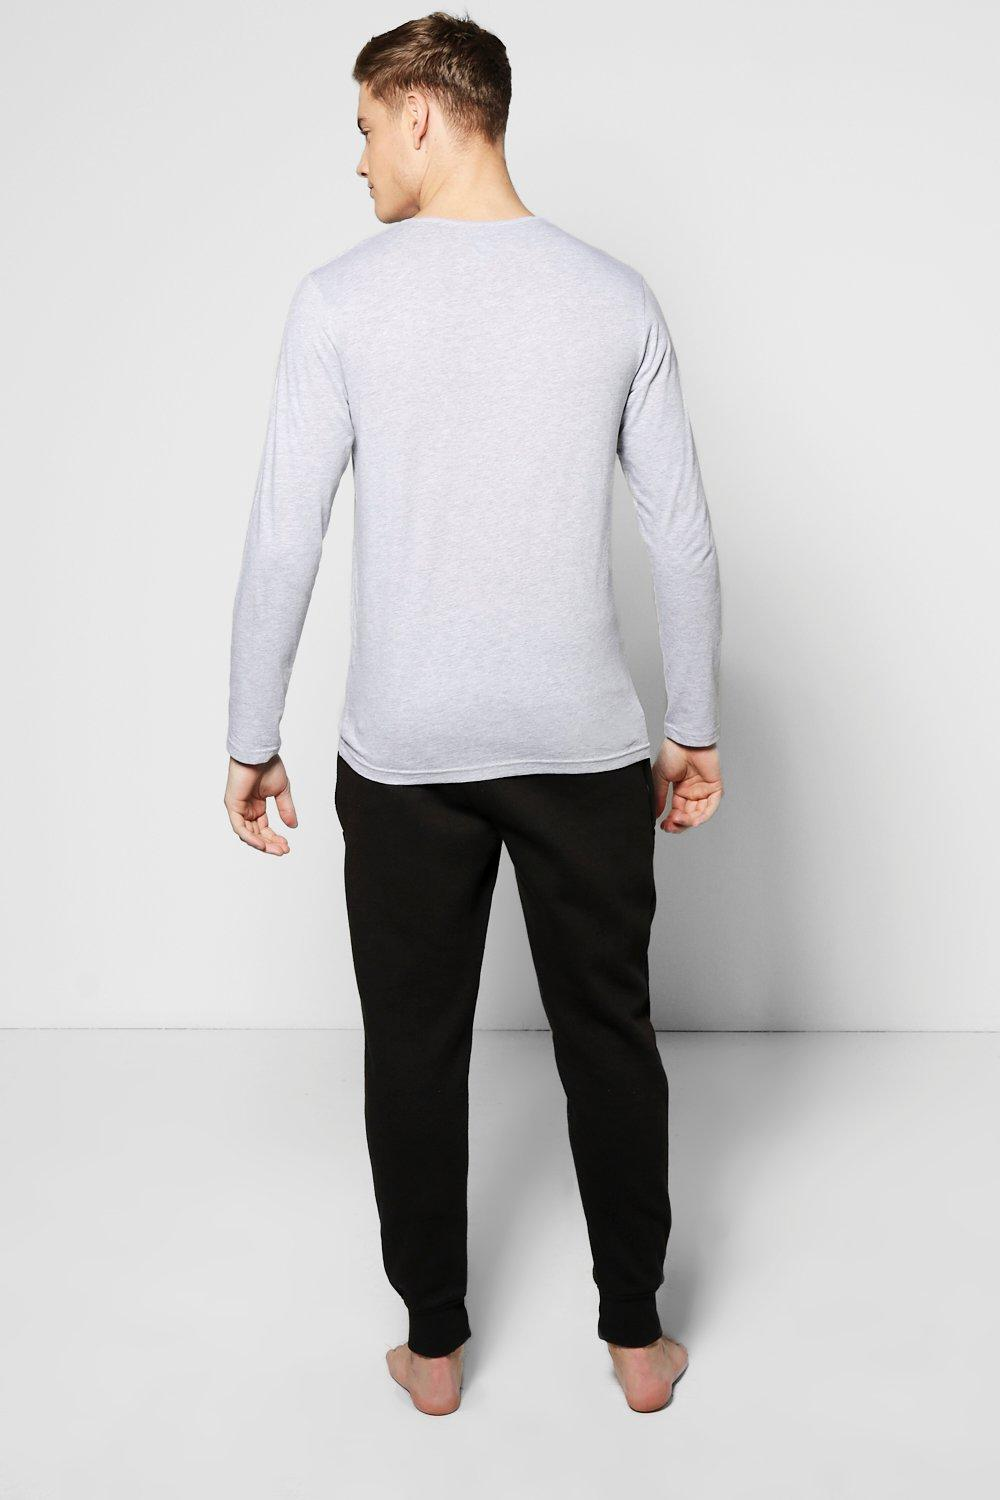 Shop 4 Long Sleeve Henleys products at Northern Tool + Equipment.